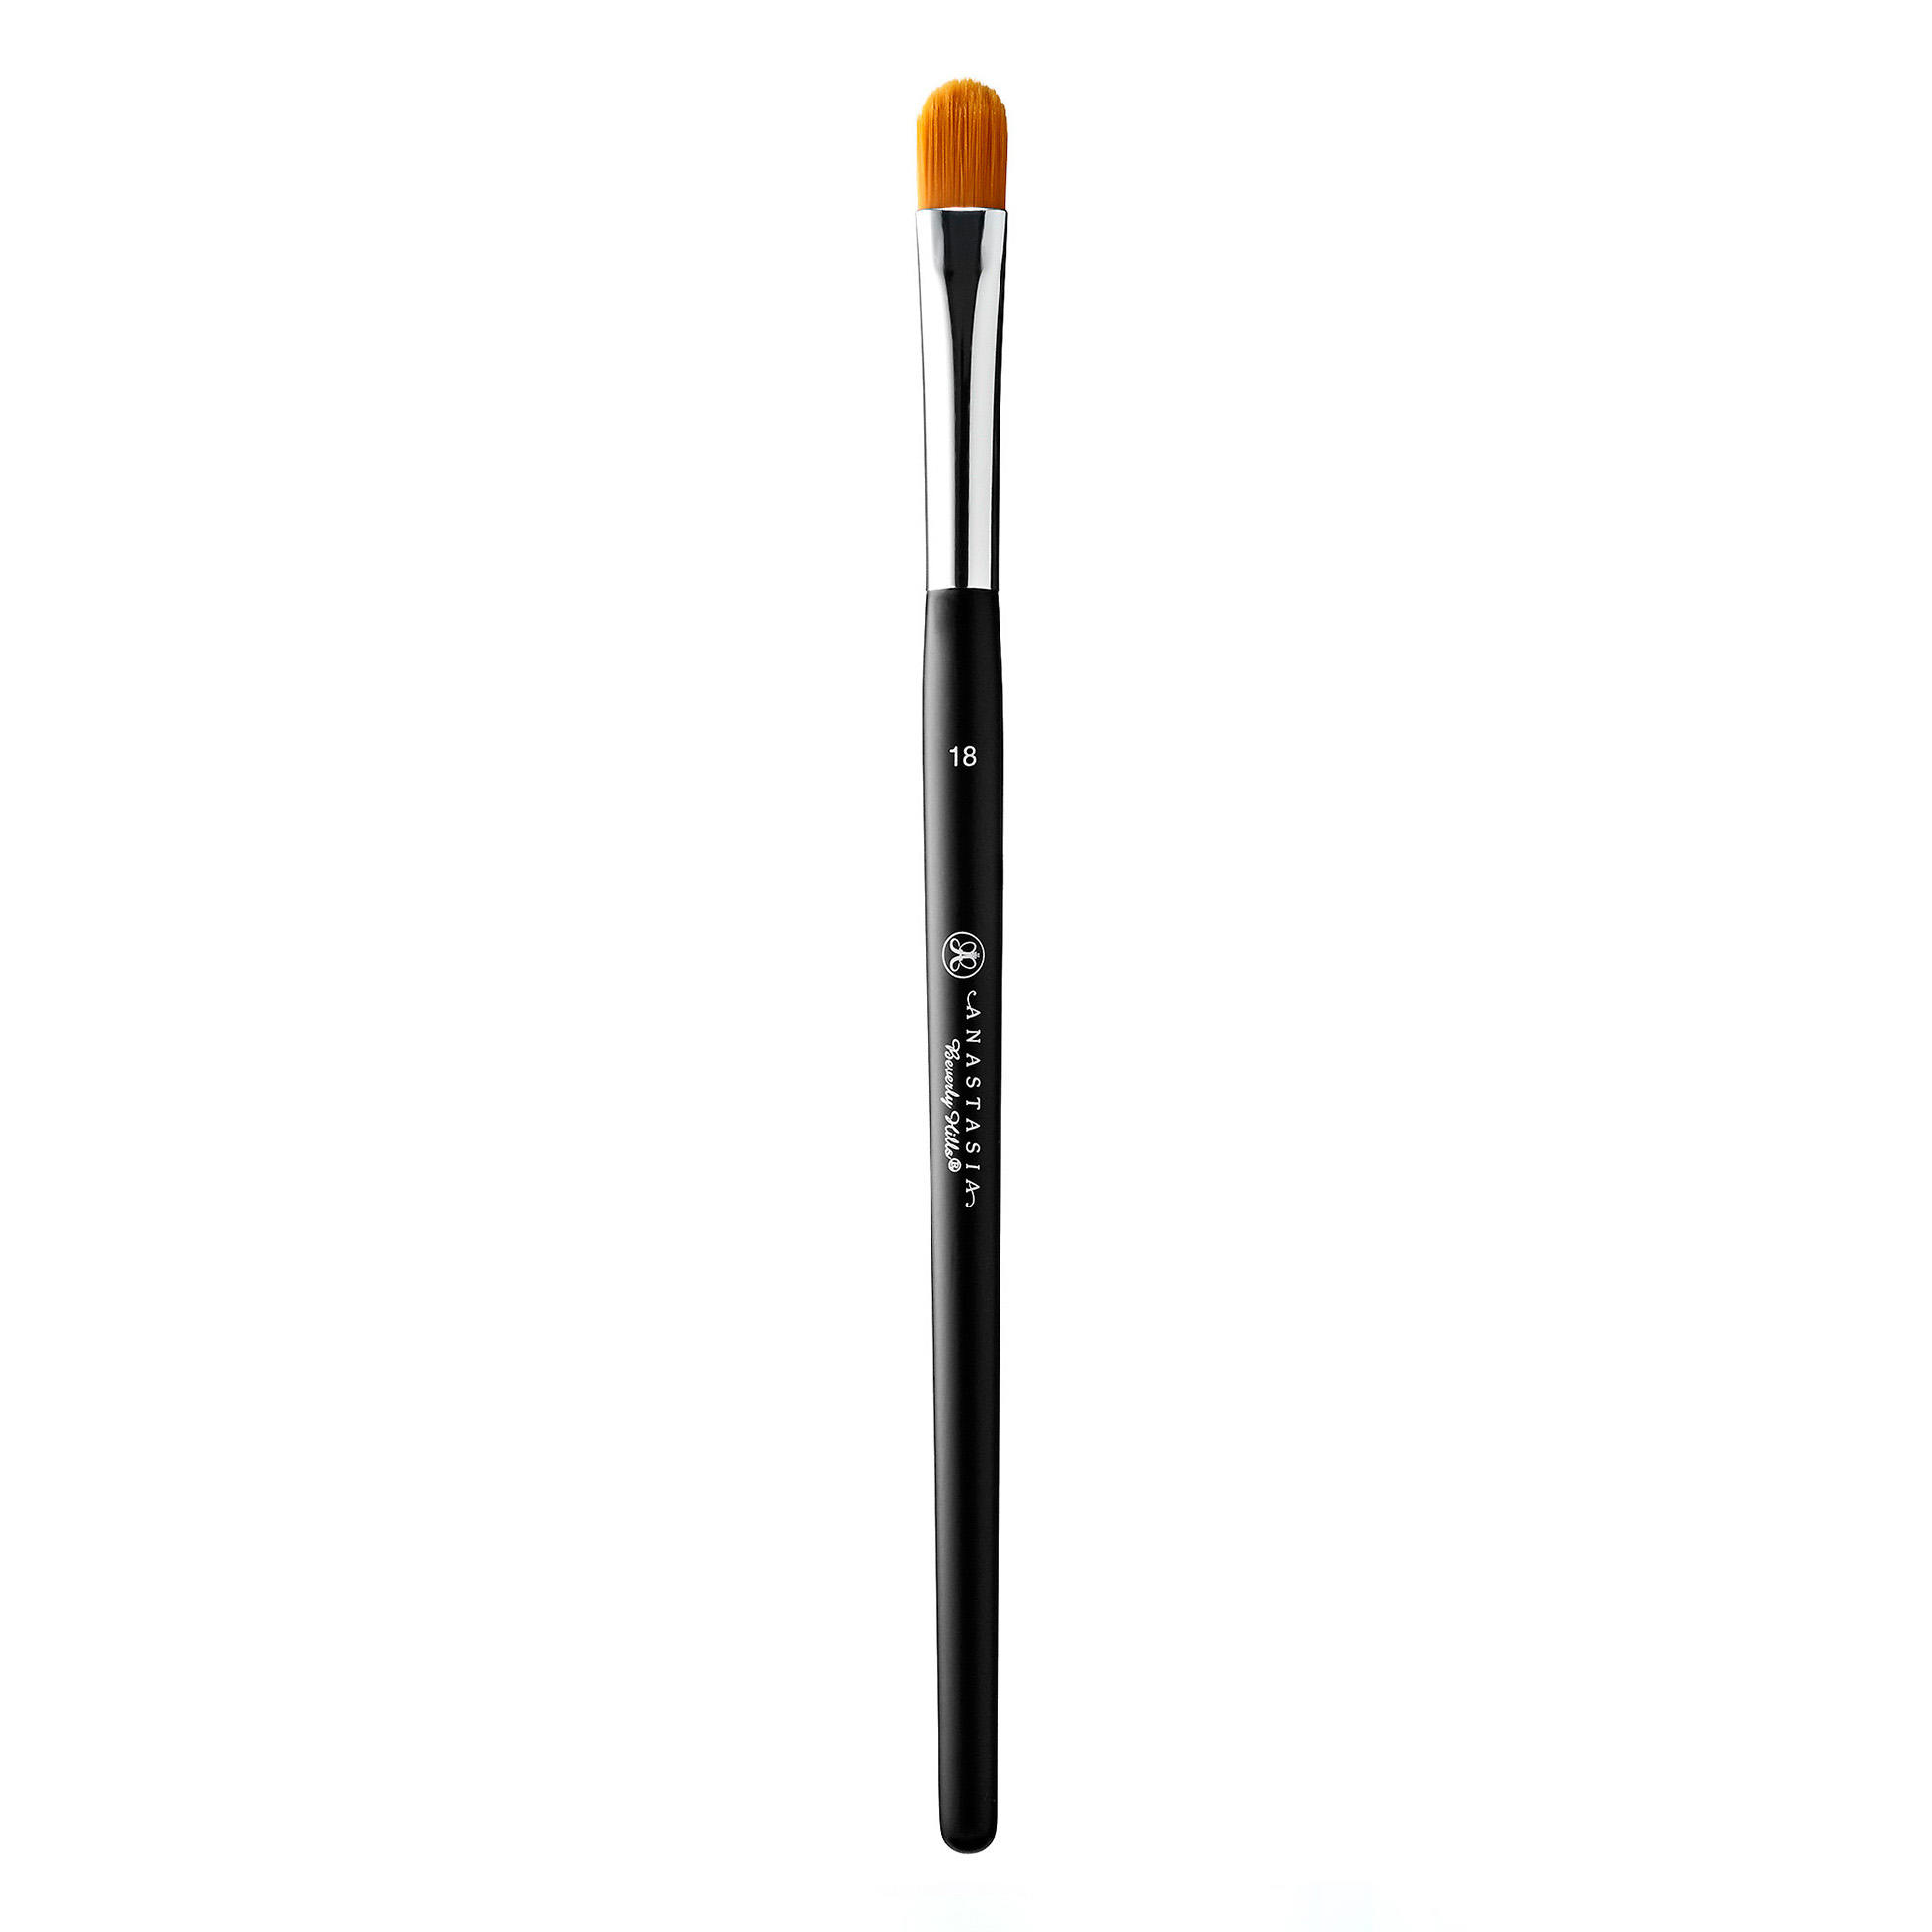 Anastasia Concealer Brush 18